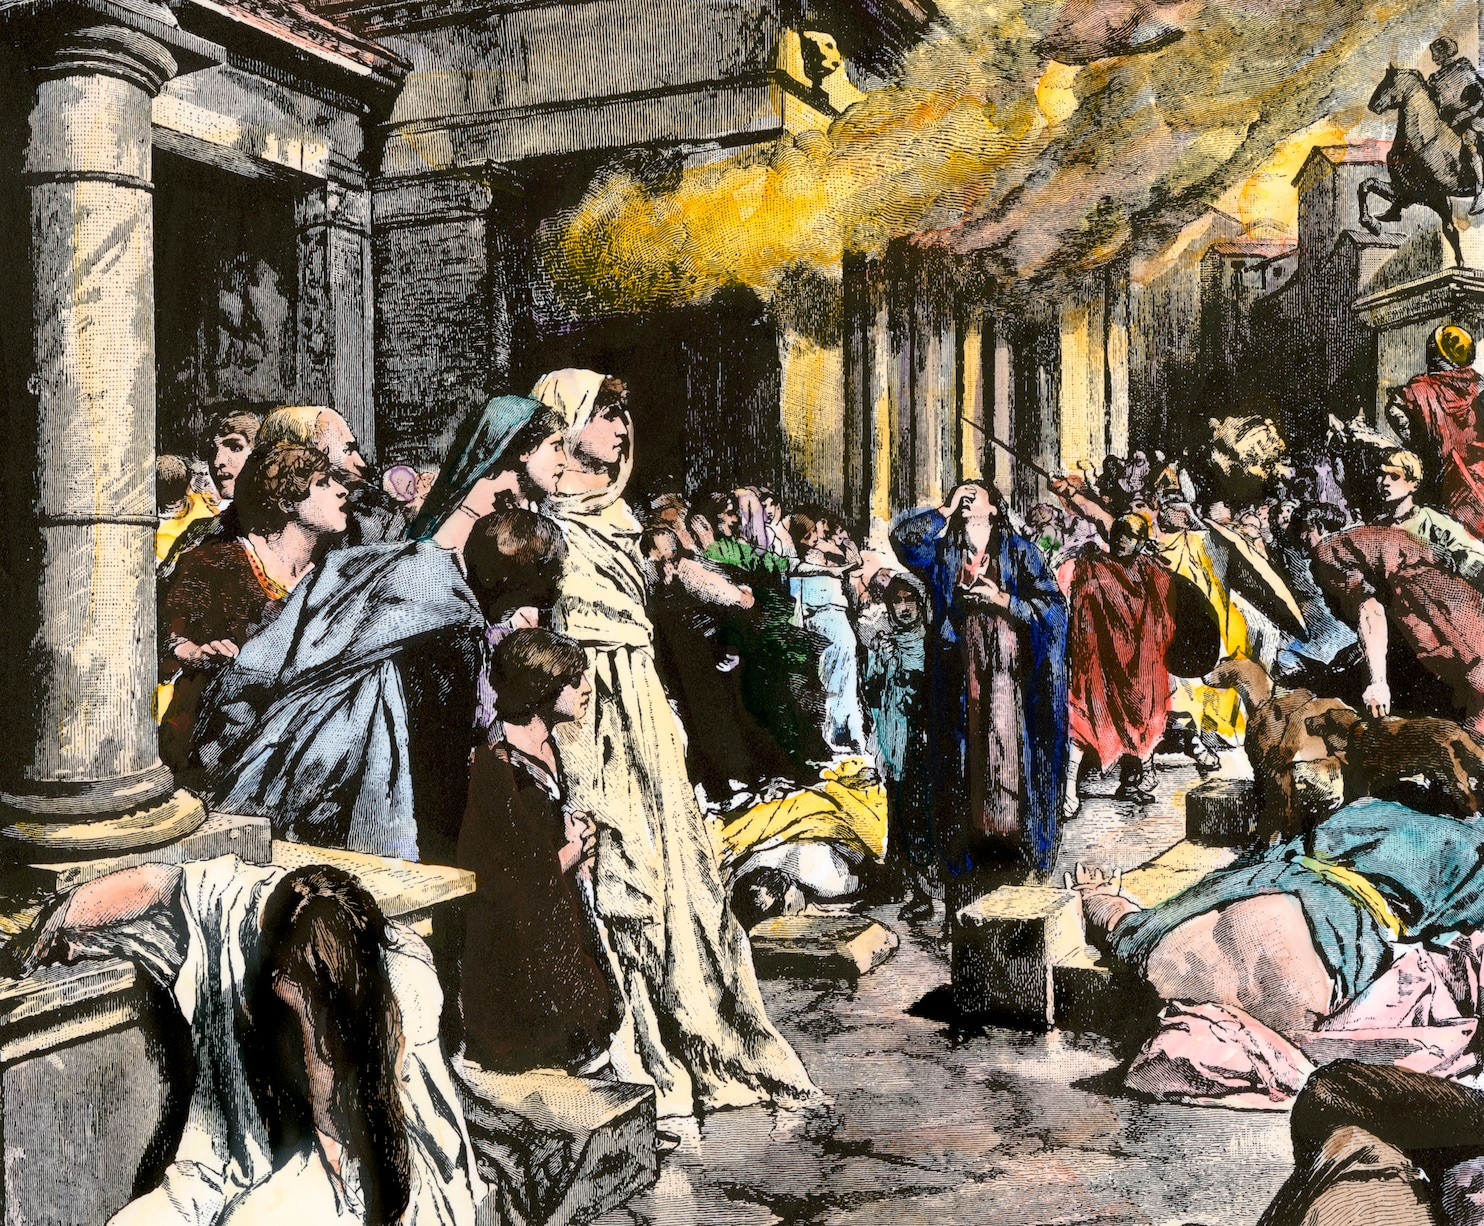 Lead Poisoning And The Fall Of Rome